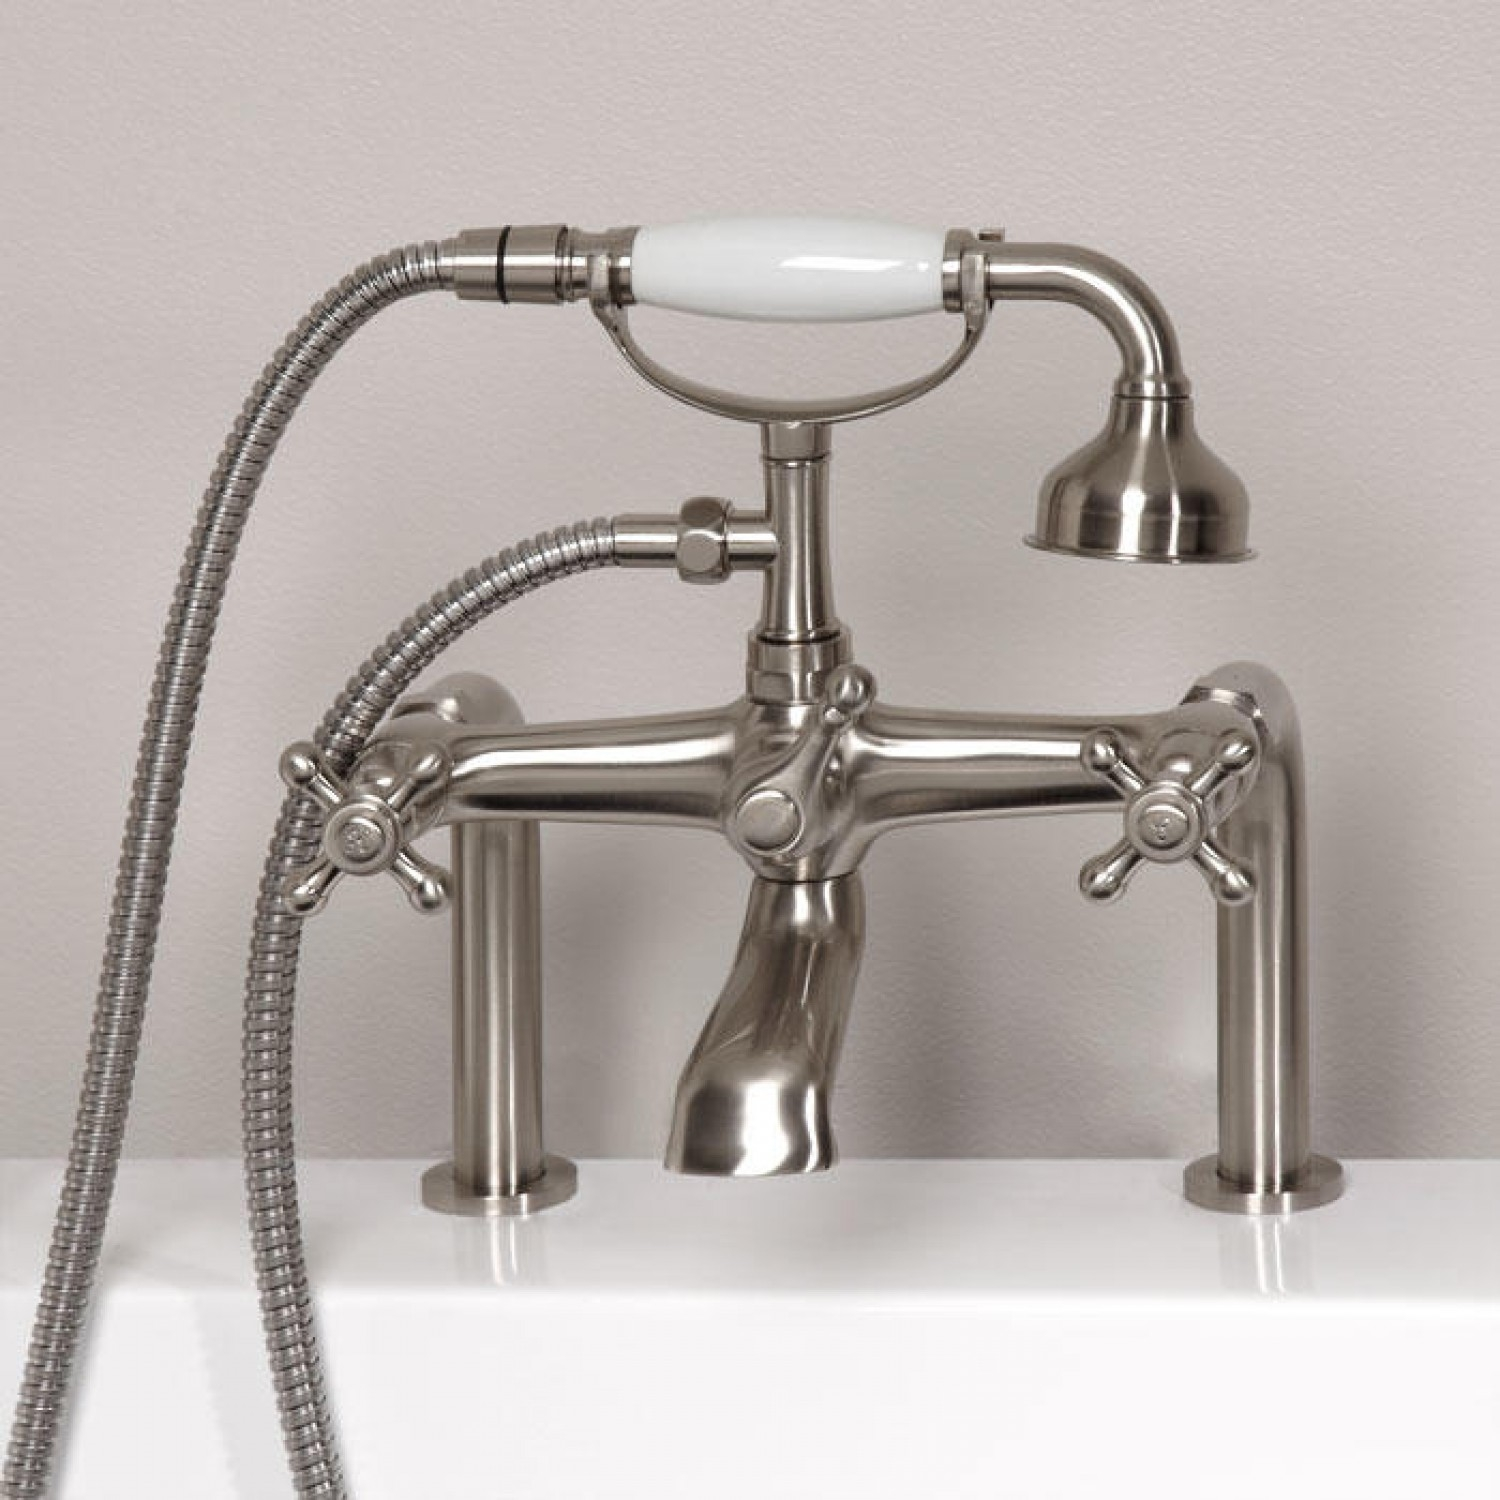 Ideas, vera deck mount tub faucet and hand shower bathroom with dimensions 1500 x 1500  .